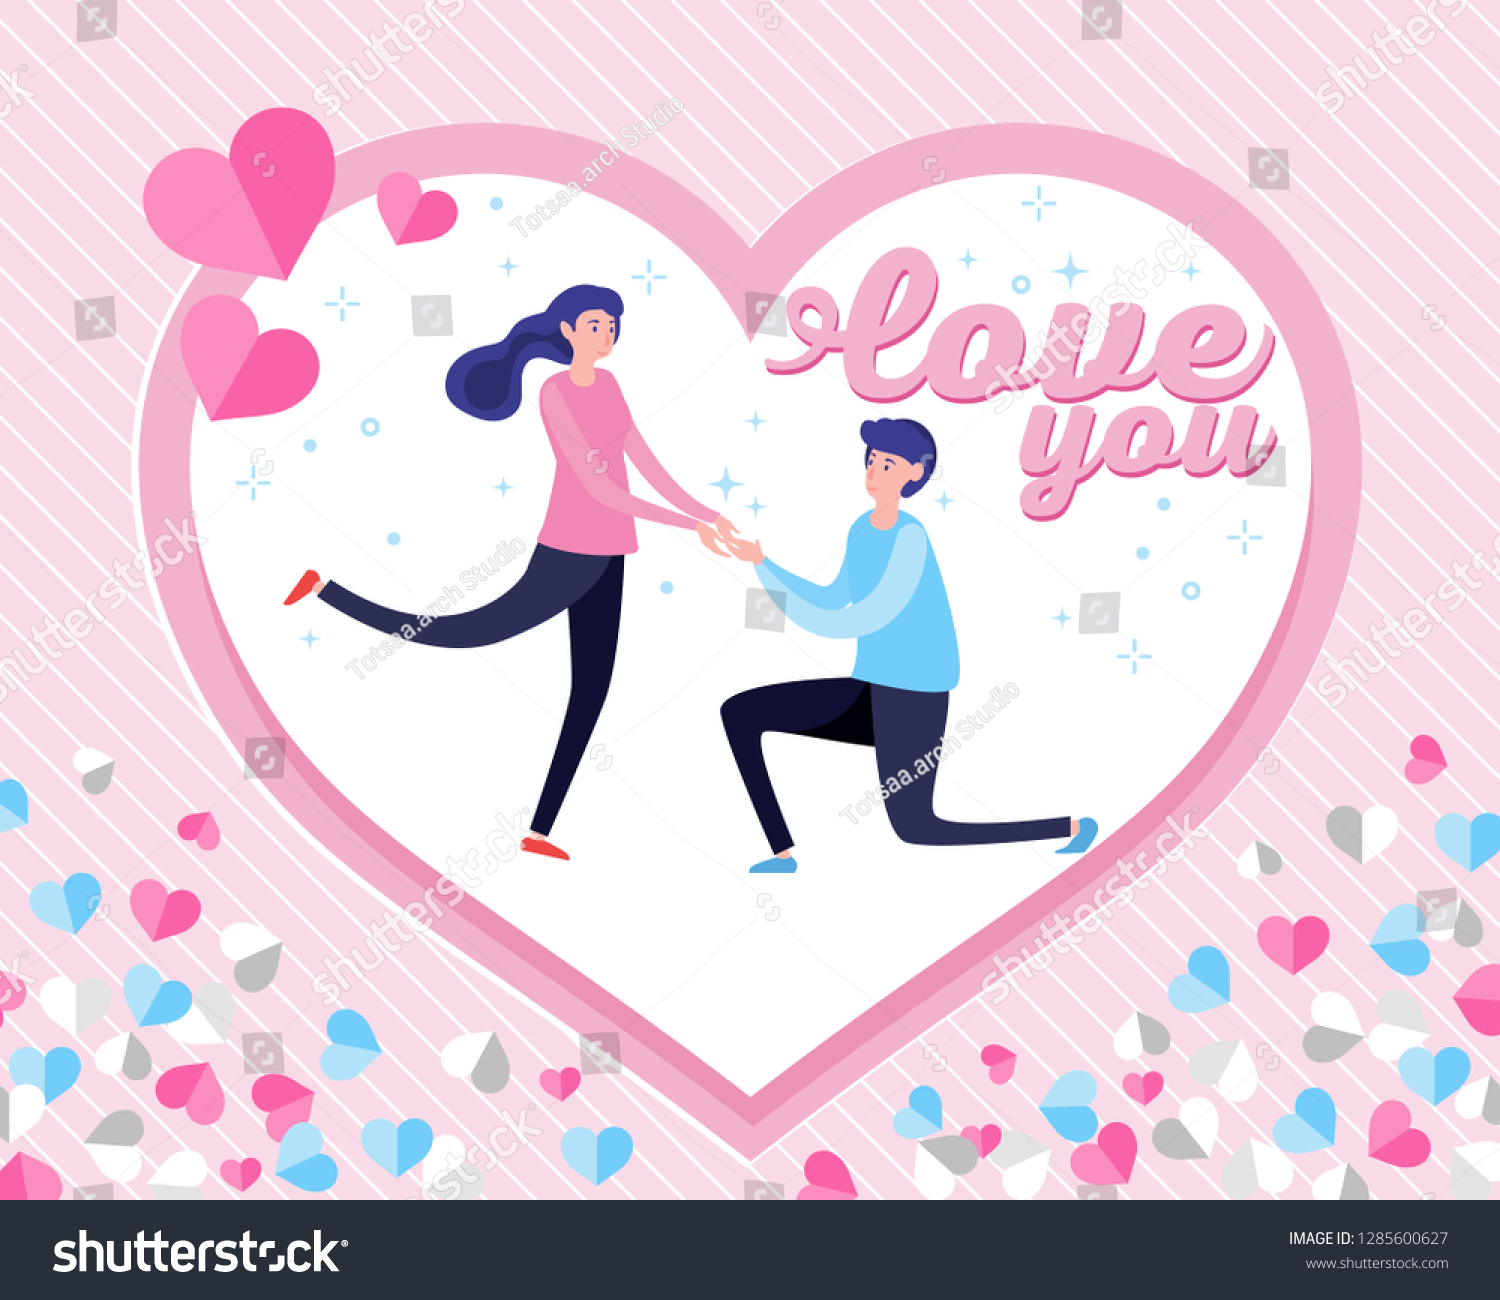 Lovely Marriage Proposal Banner Valentines Day Stock Vector Royalty Free 1285600627